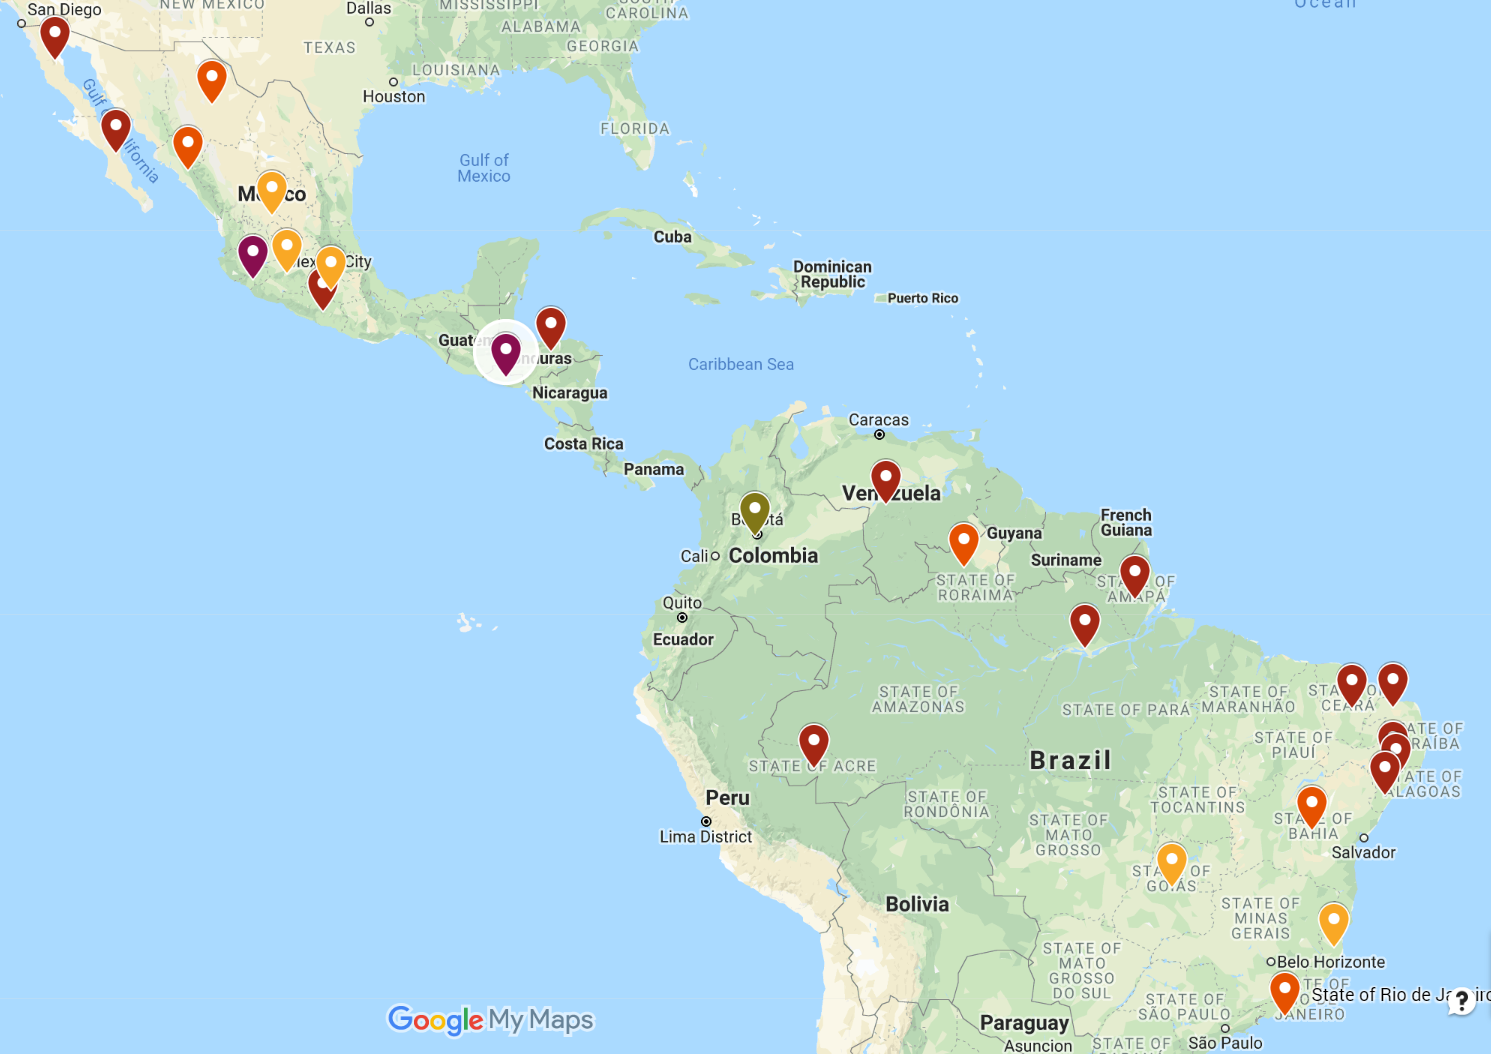 Danger Zones in Central & South America (Dark Red = Worse)